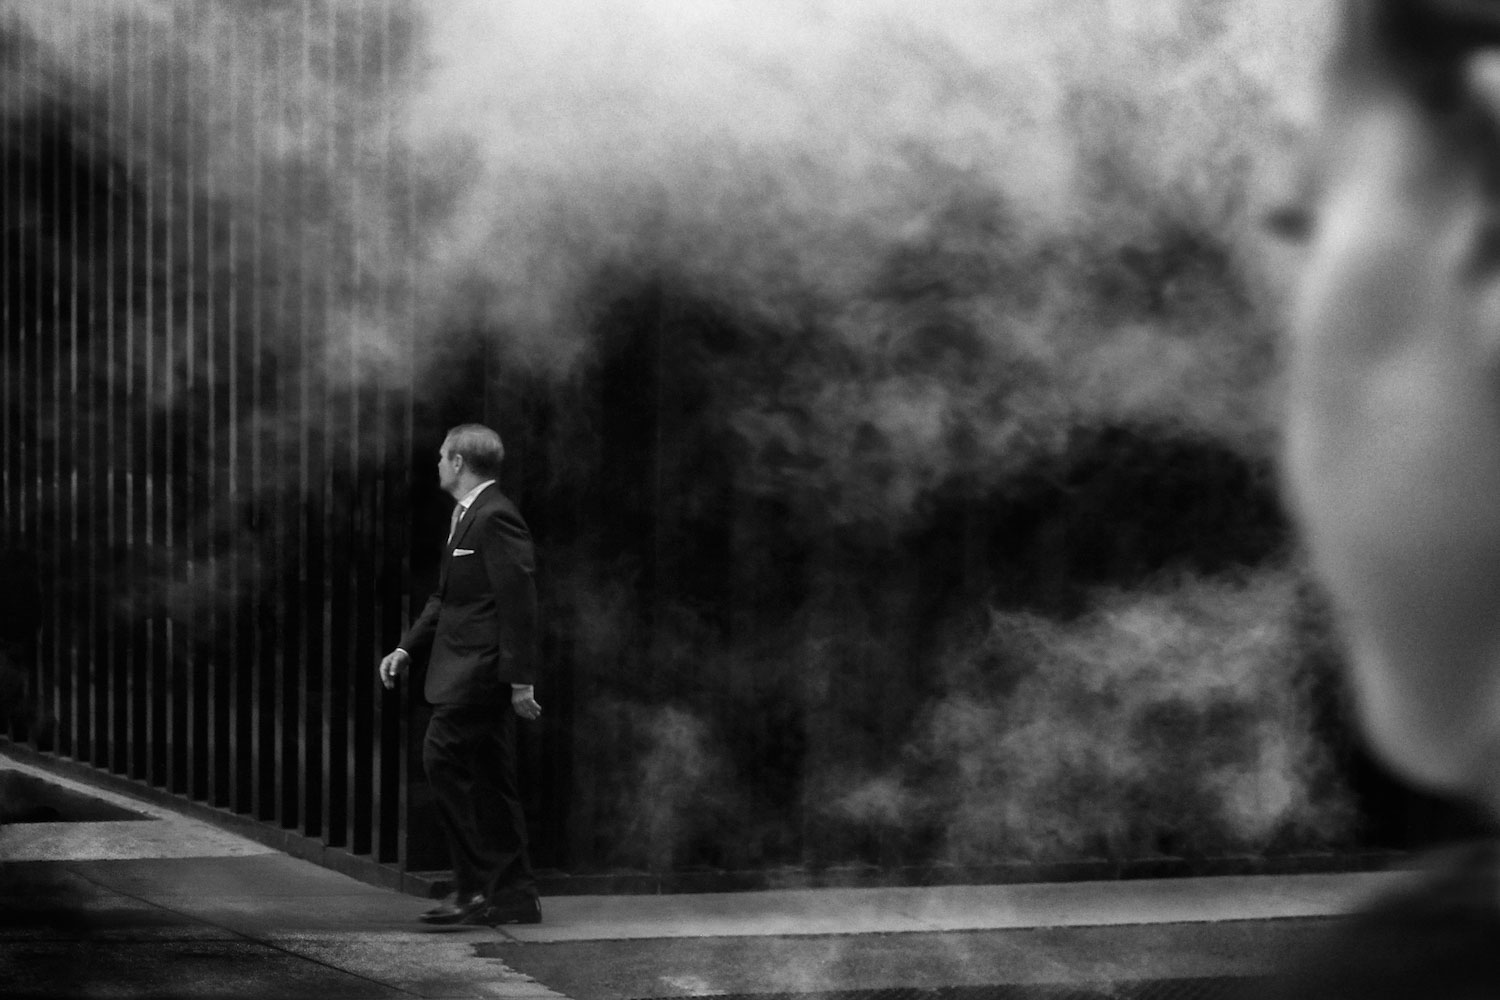 Melissa Breyer street photo street photography life is street photographie de rue